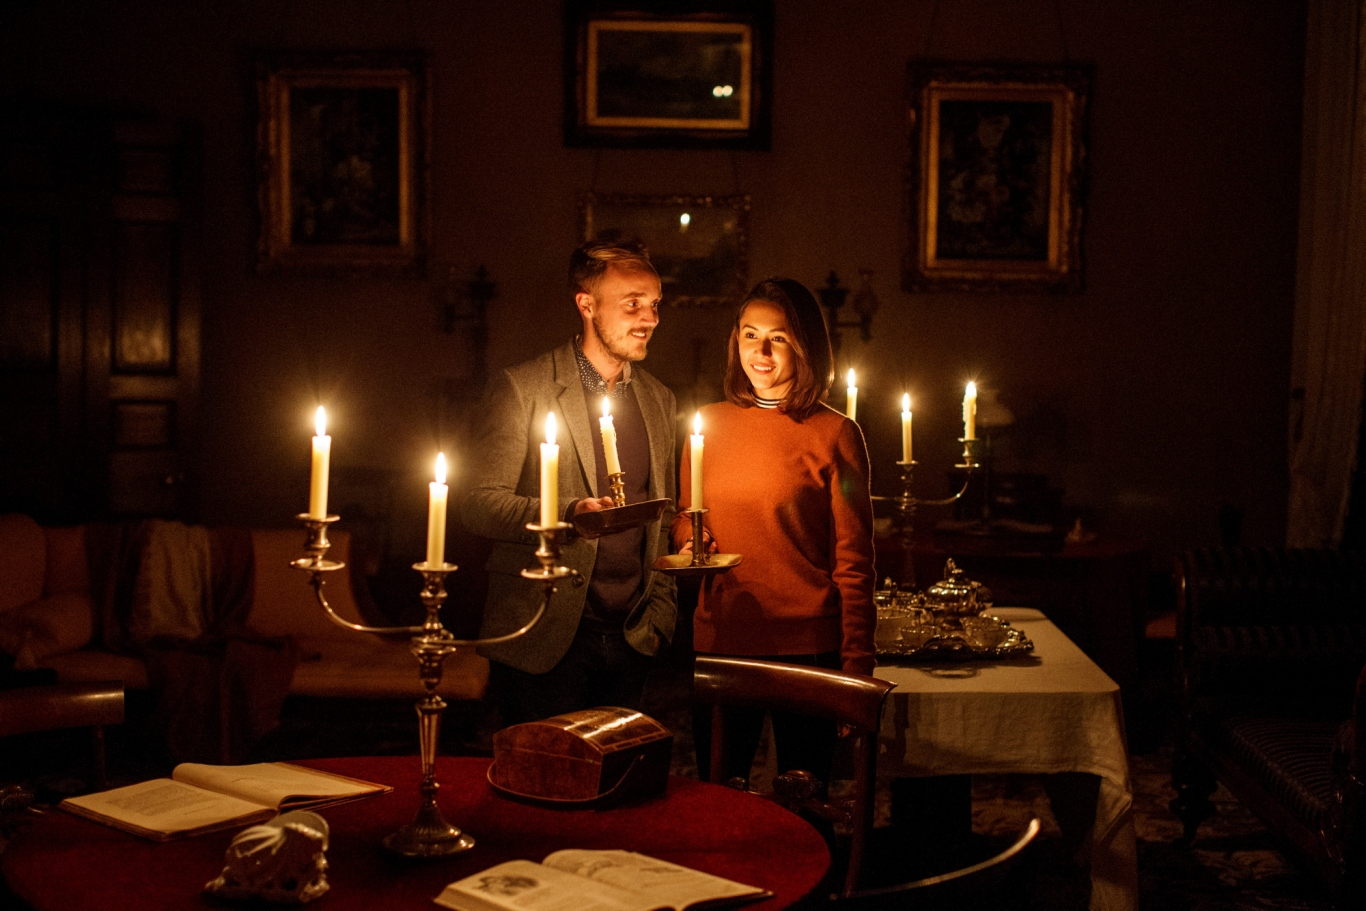 Two people in ornately furnished room, lit by candle light.